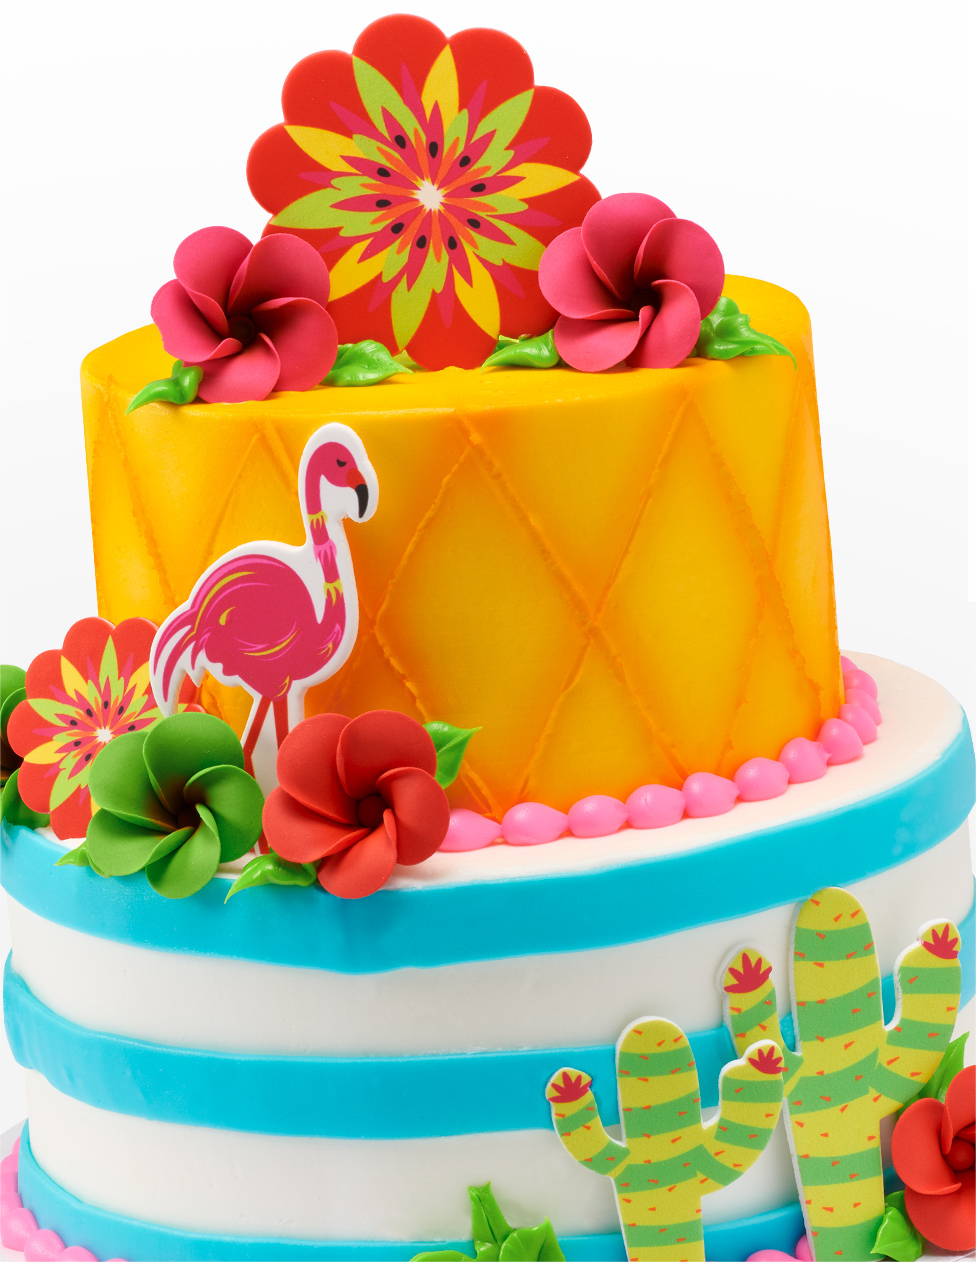 Tiered Cake with Blue Strips and Flamingo